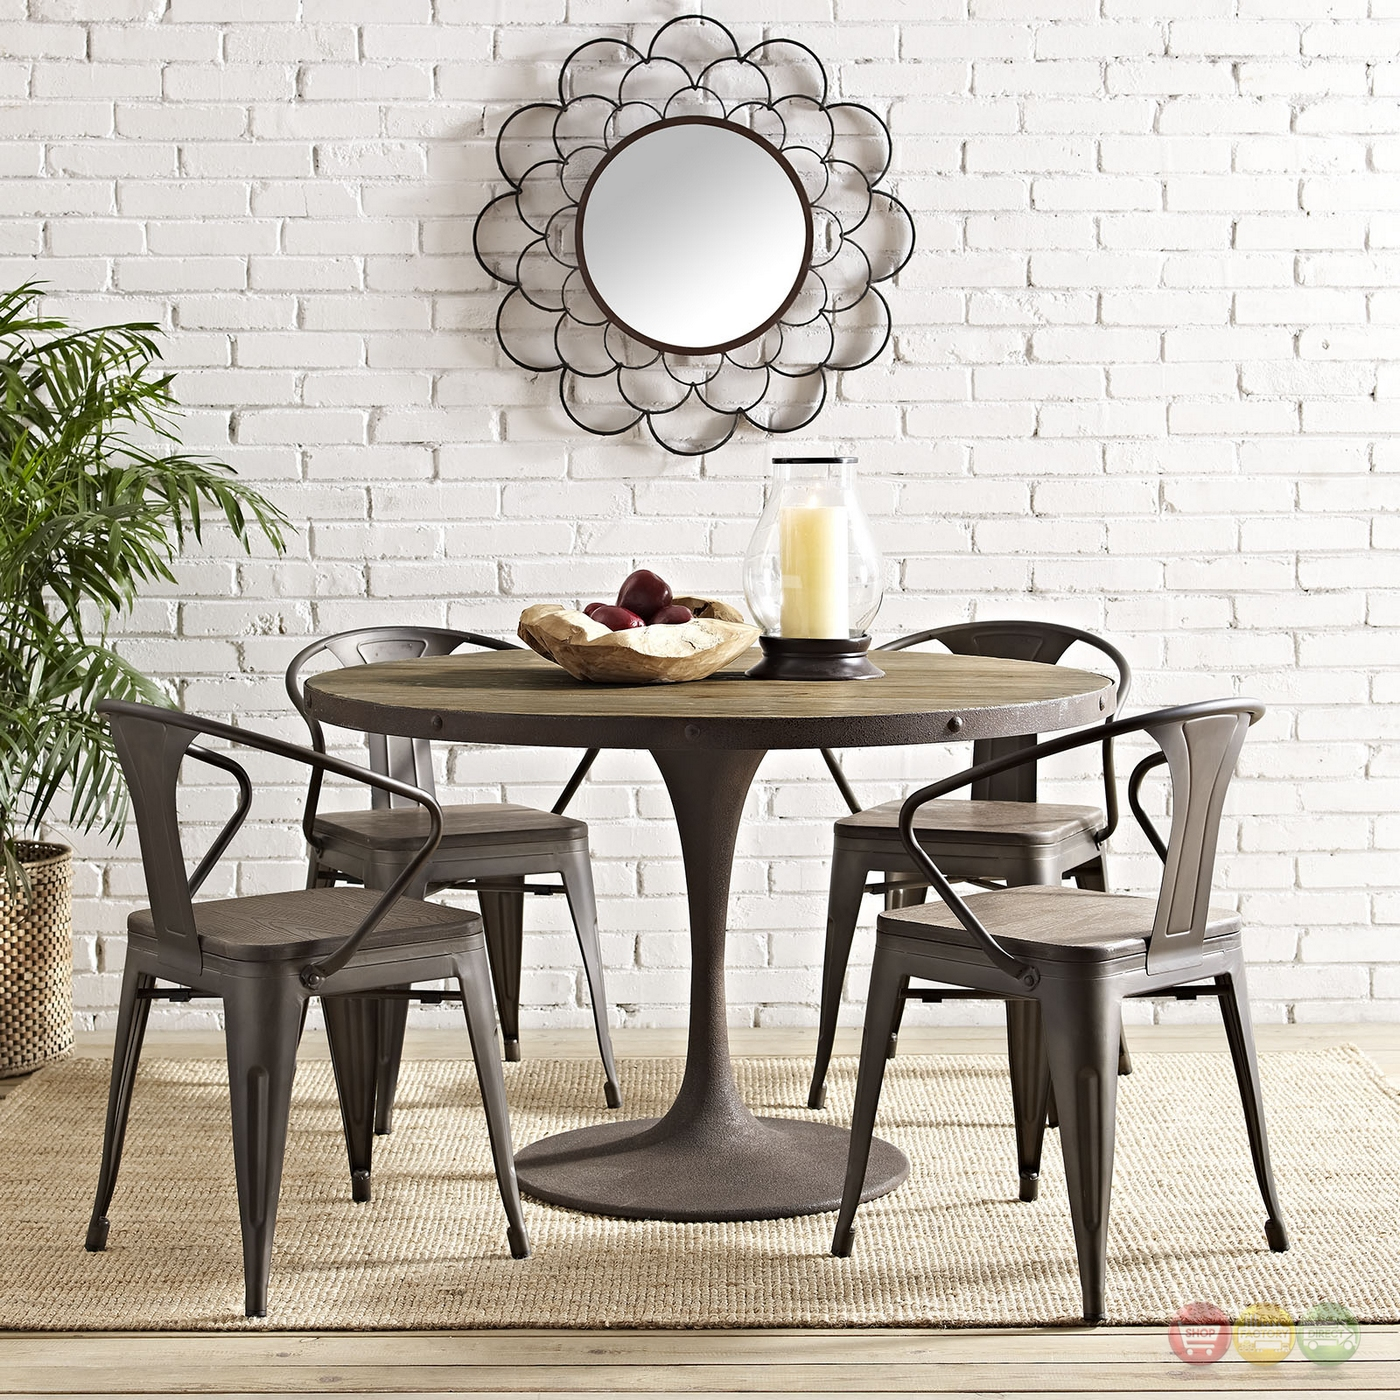 "Wood Round Dining Table: Drive Rustic 48"" Round Wood Top Dining Table W/ Iron"